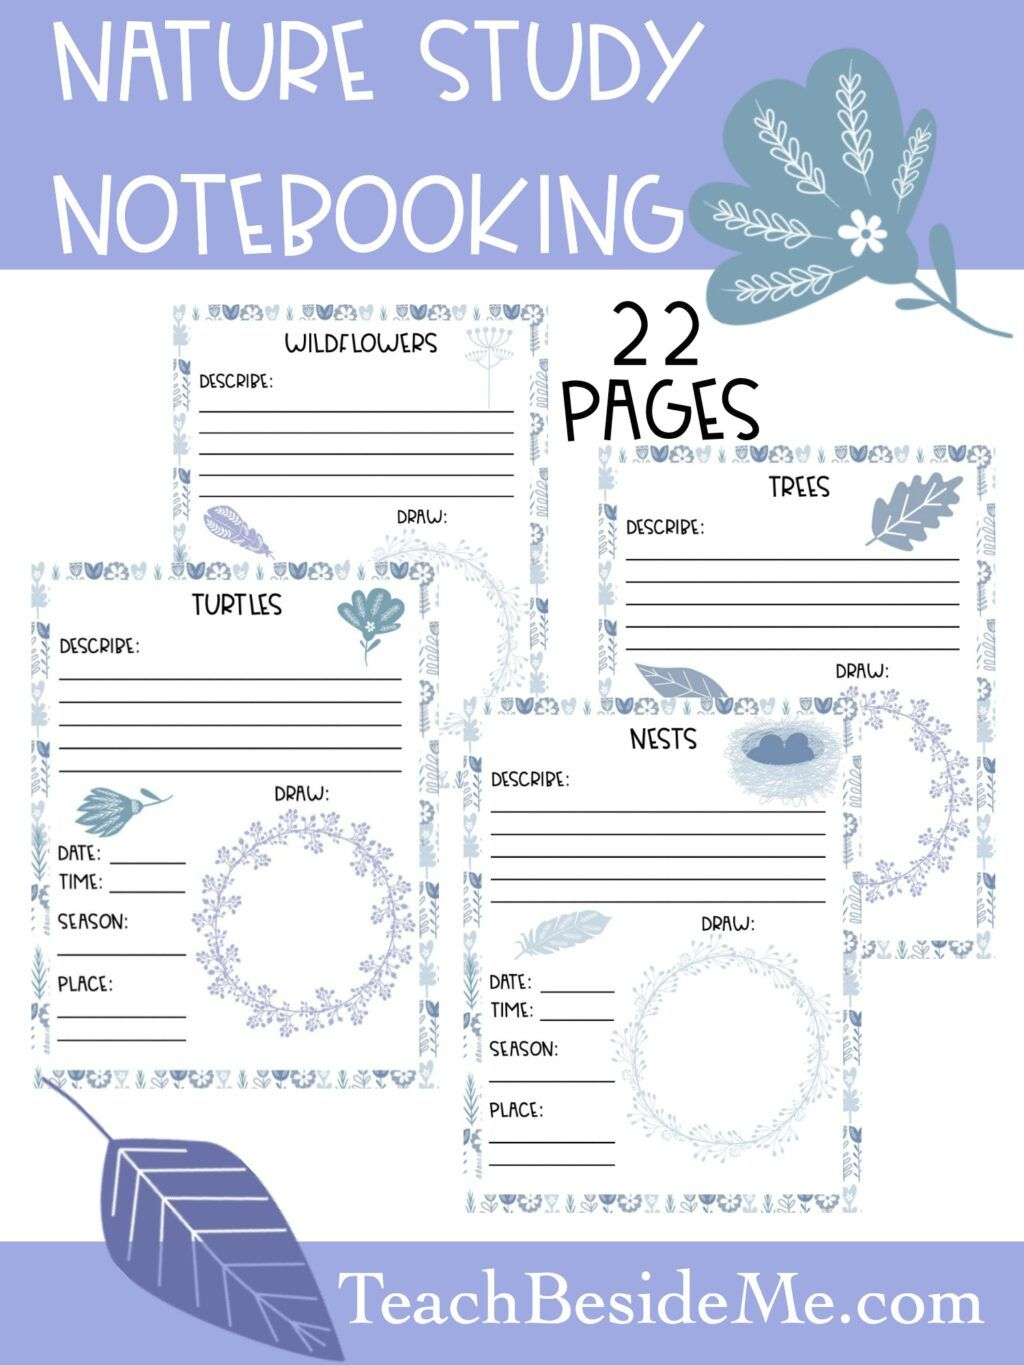 Nature Study Notebooking